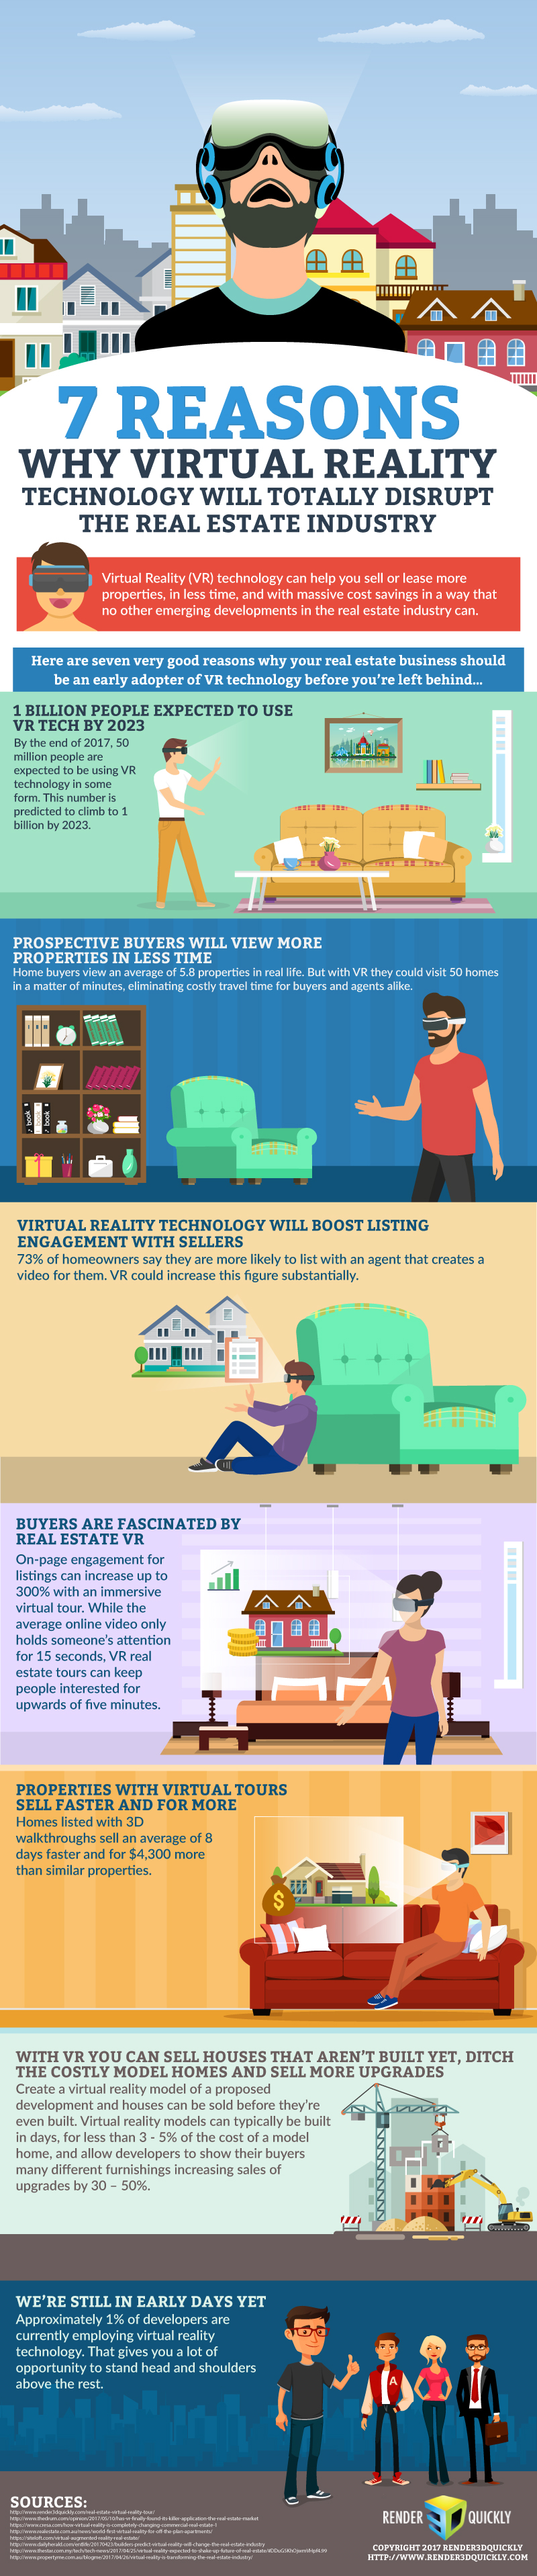 7 Reasons Why Virtual Reality Technology Will Totally Disrupt the Real Estate Industry' title='7 Reasons Why Virtual Reality Technology Will Totally Disrupt the Real Estate Industry - Render3DQuickly.com v2